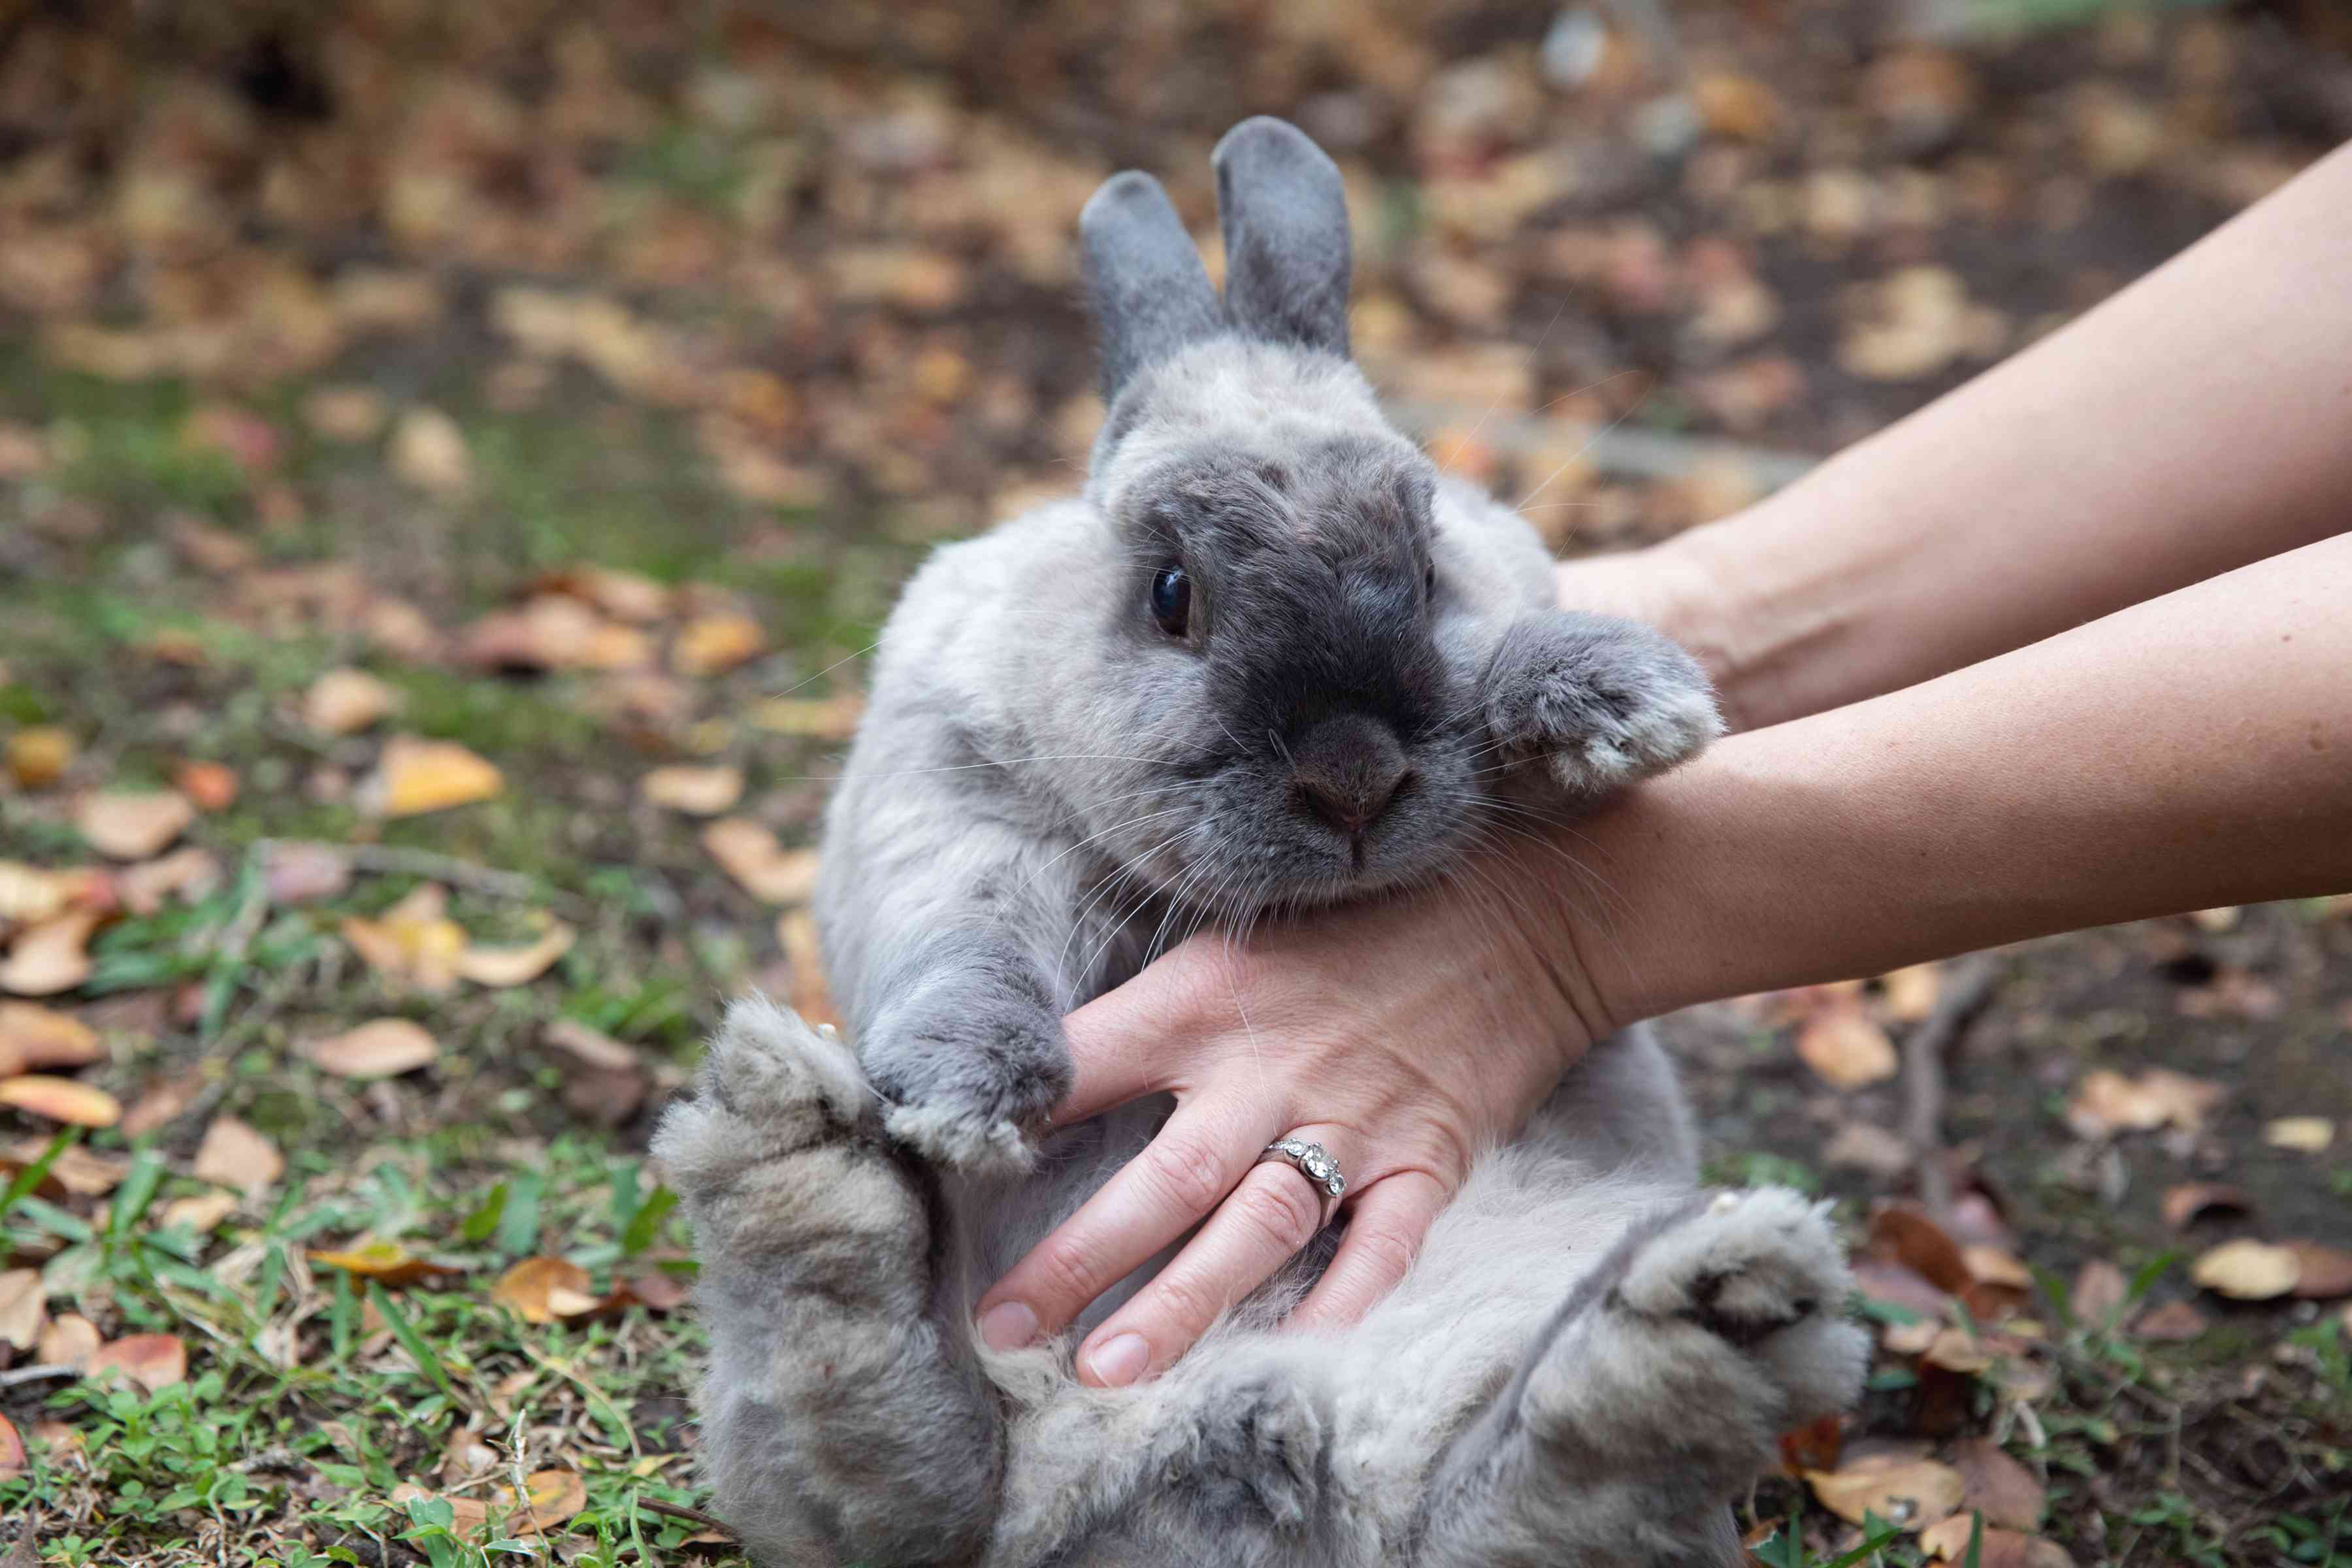 Gray rabbit held up with hands and belly massaged